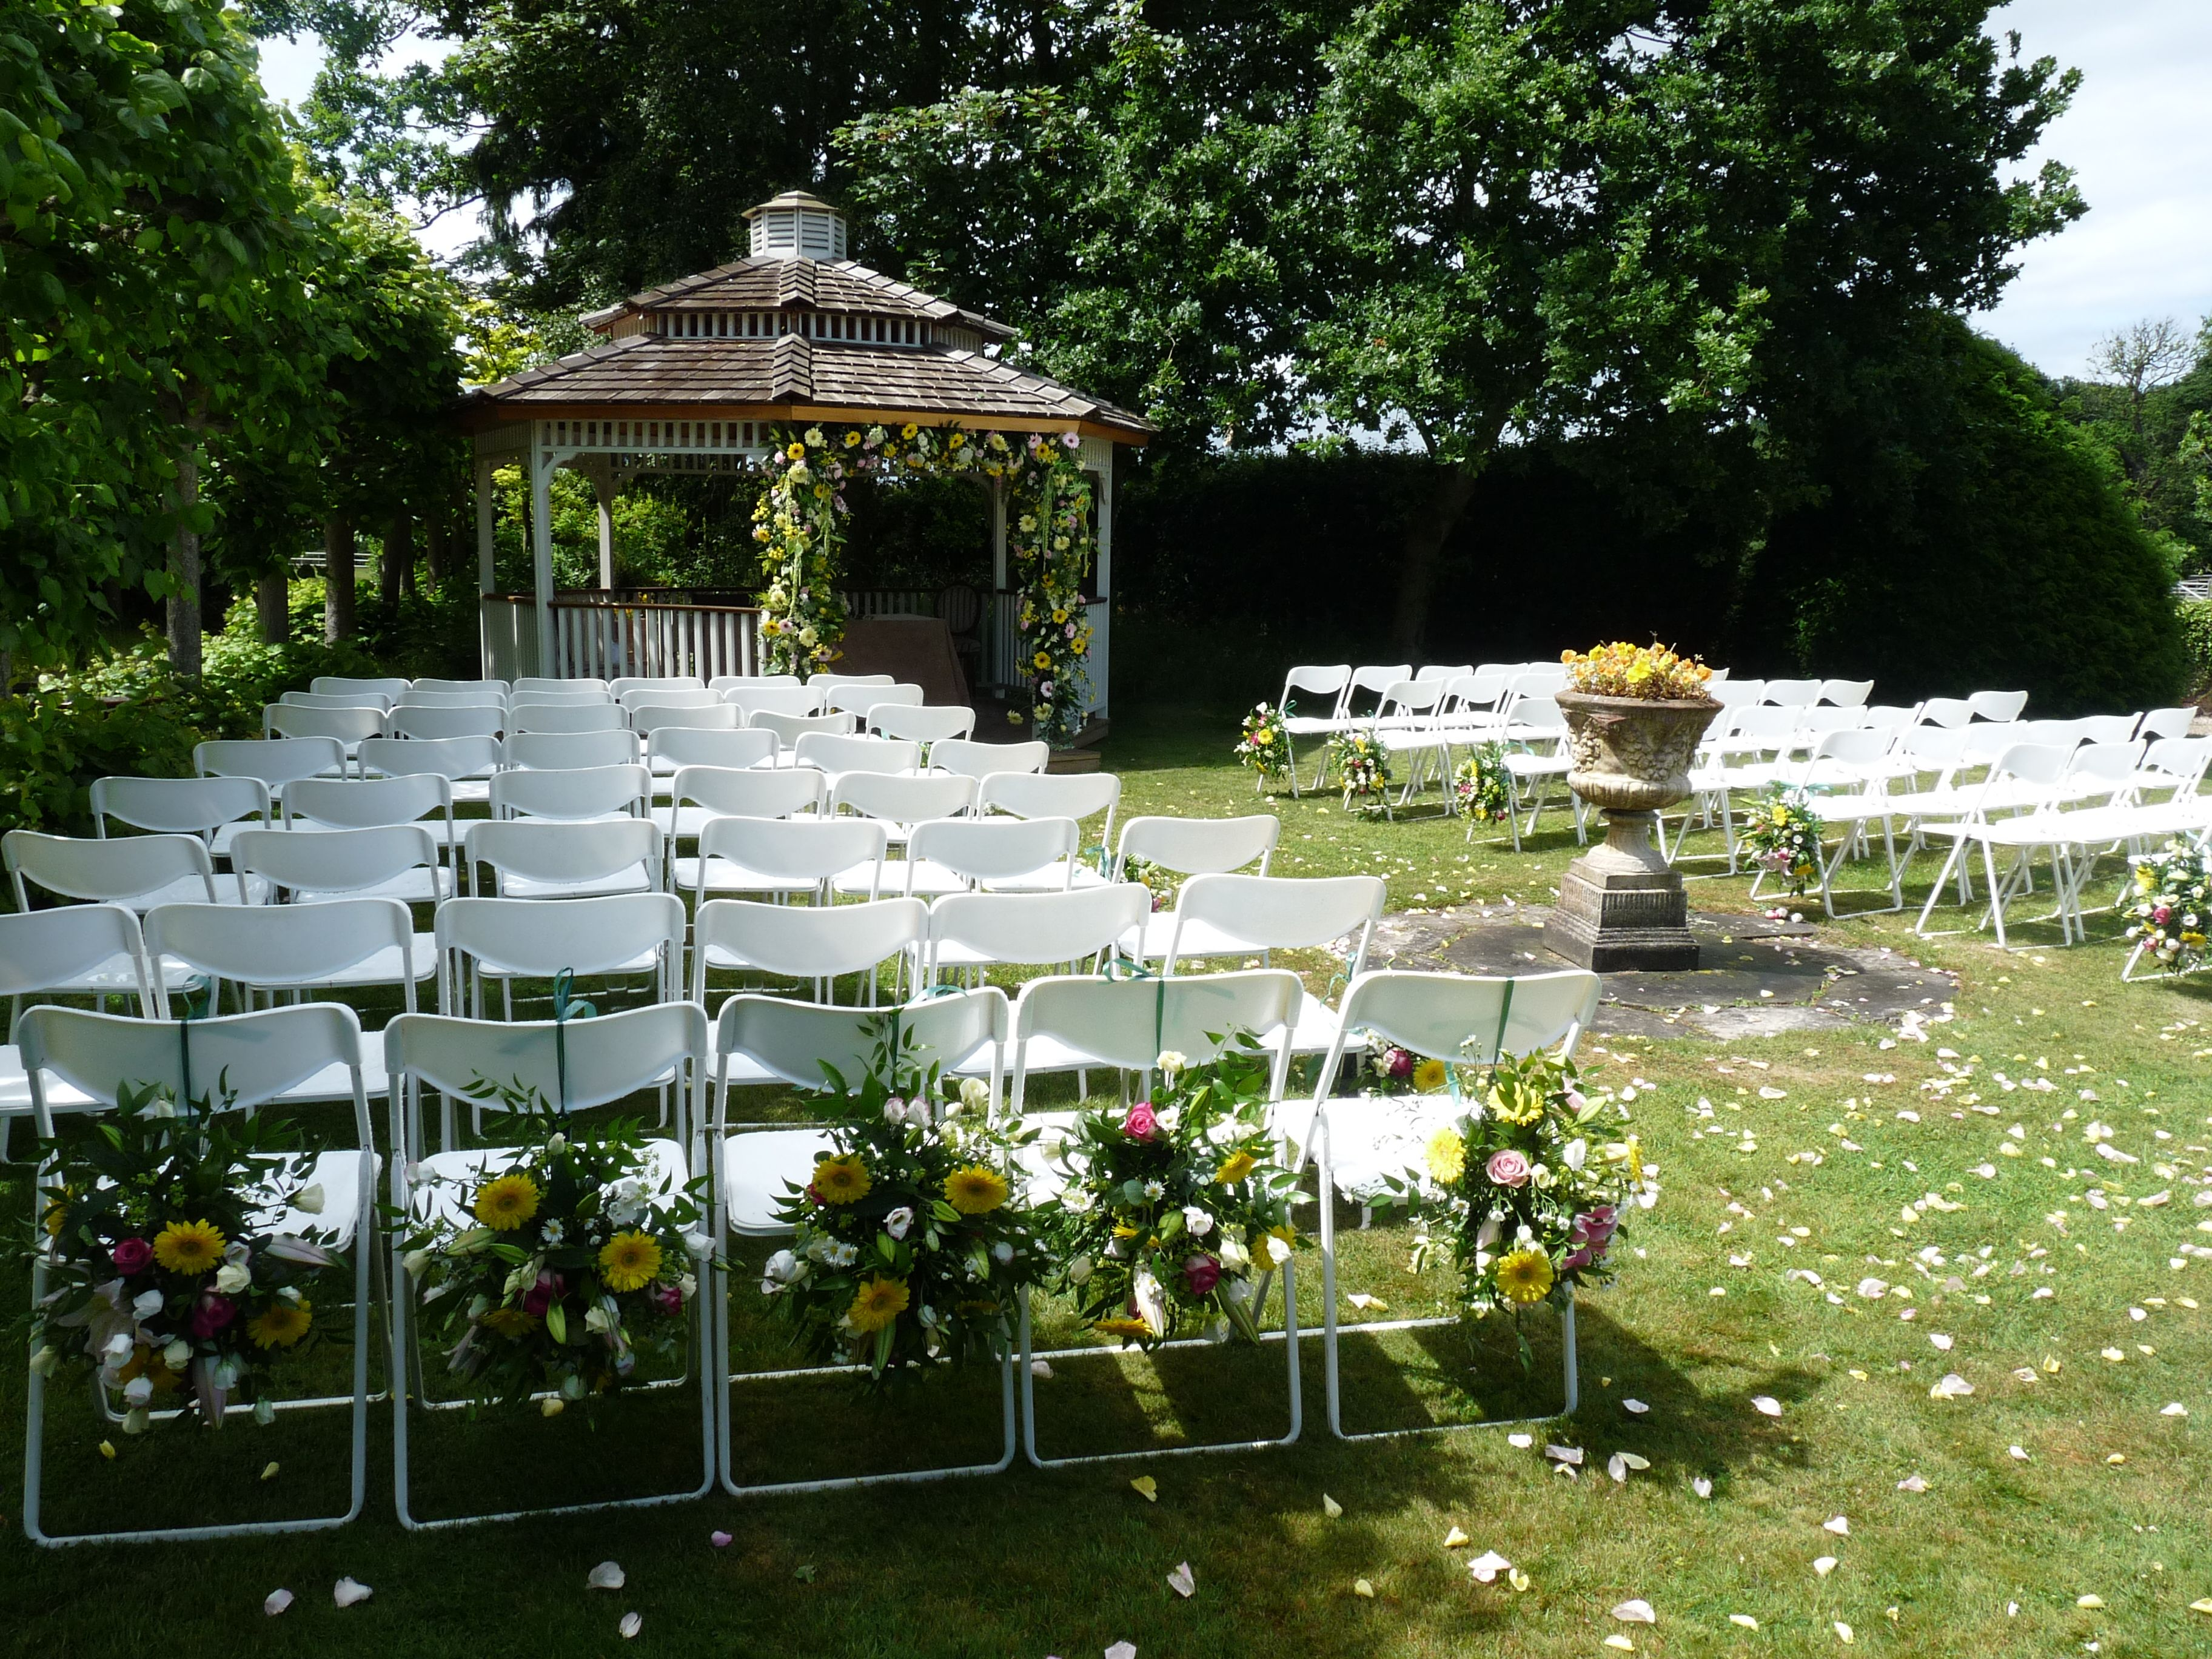 Greenwoods Hotel Spa and Retreat Our gorgeous Garden Gazebo, perfect for a sunny day